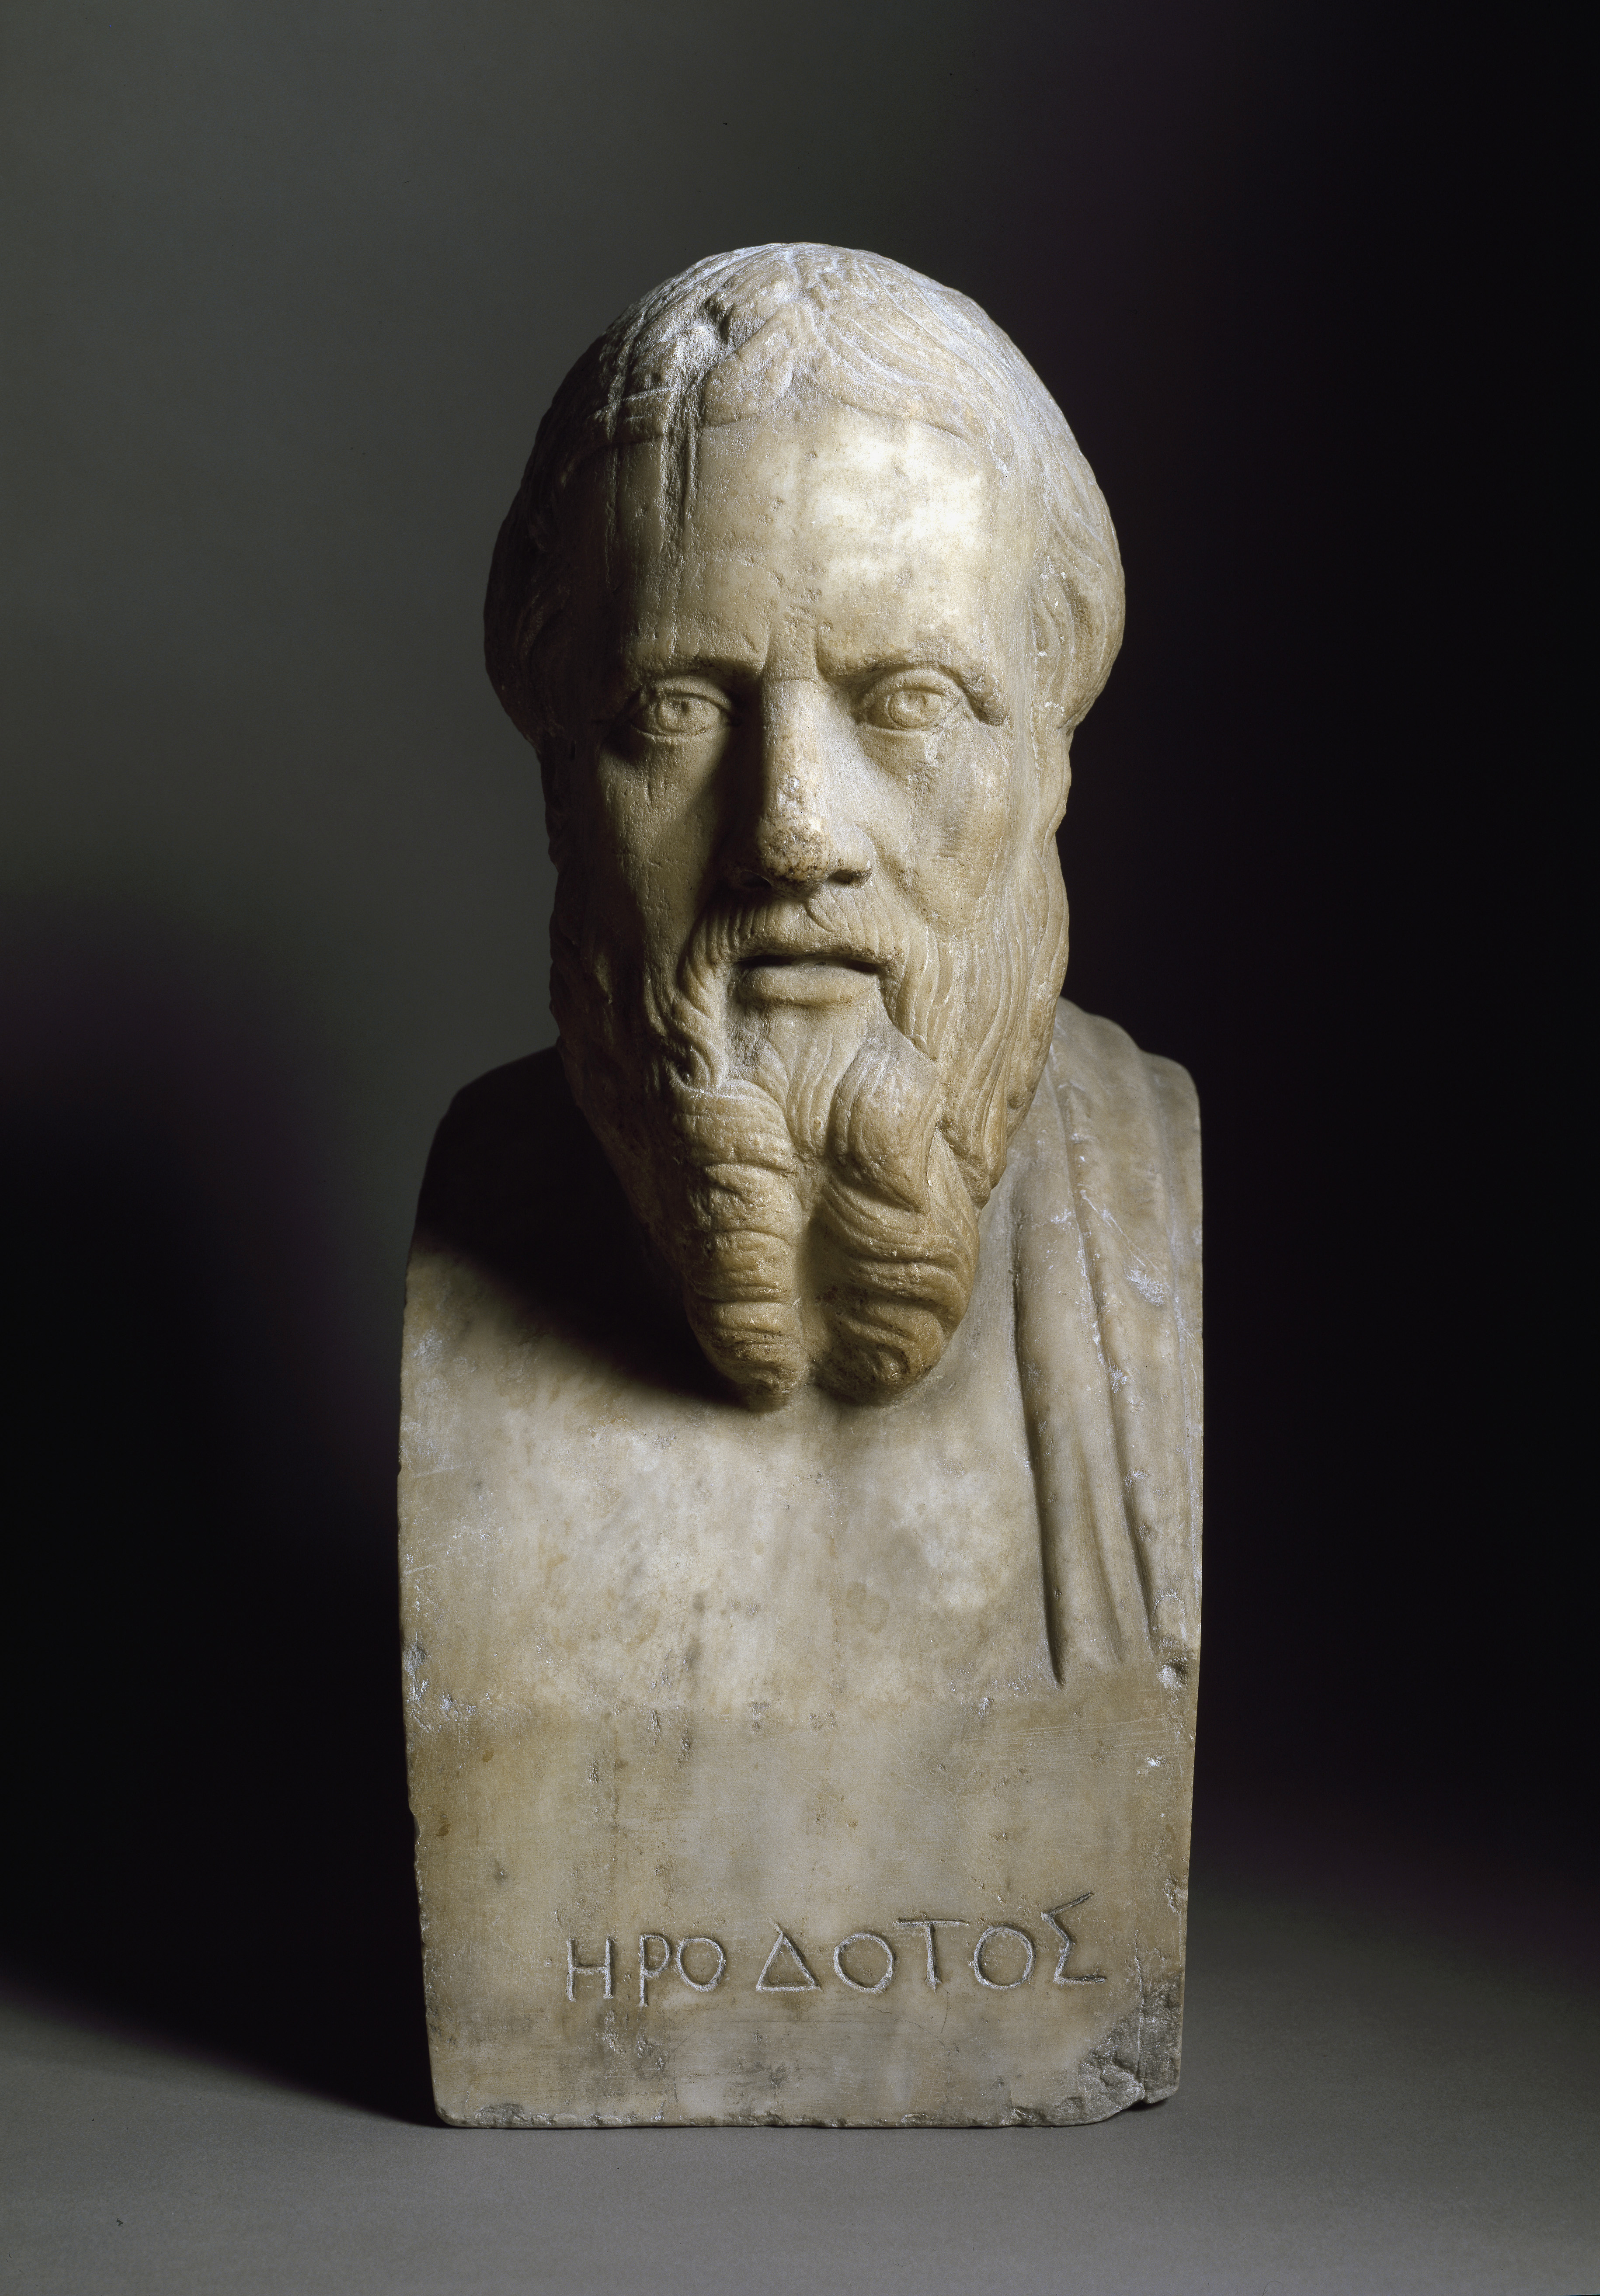 living the good life herodotus v The epicureans, opposite of the cynics, proclaimed that ataraxia, or undisturbed pleasure, was the purpose of life epicurus, founder of the epicurean school, taught, we cannot live pleasurably without living prudently, gracefully, and justly and we cannot live.